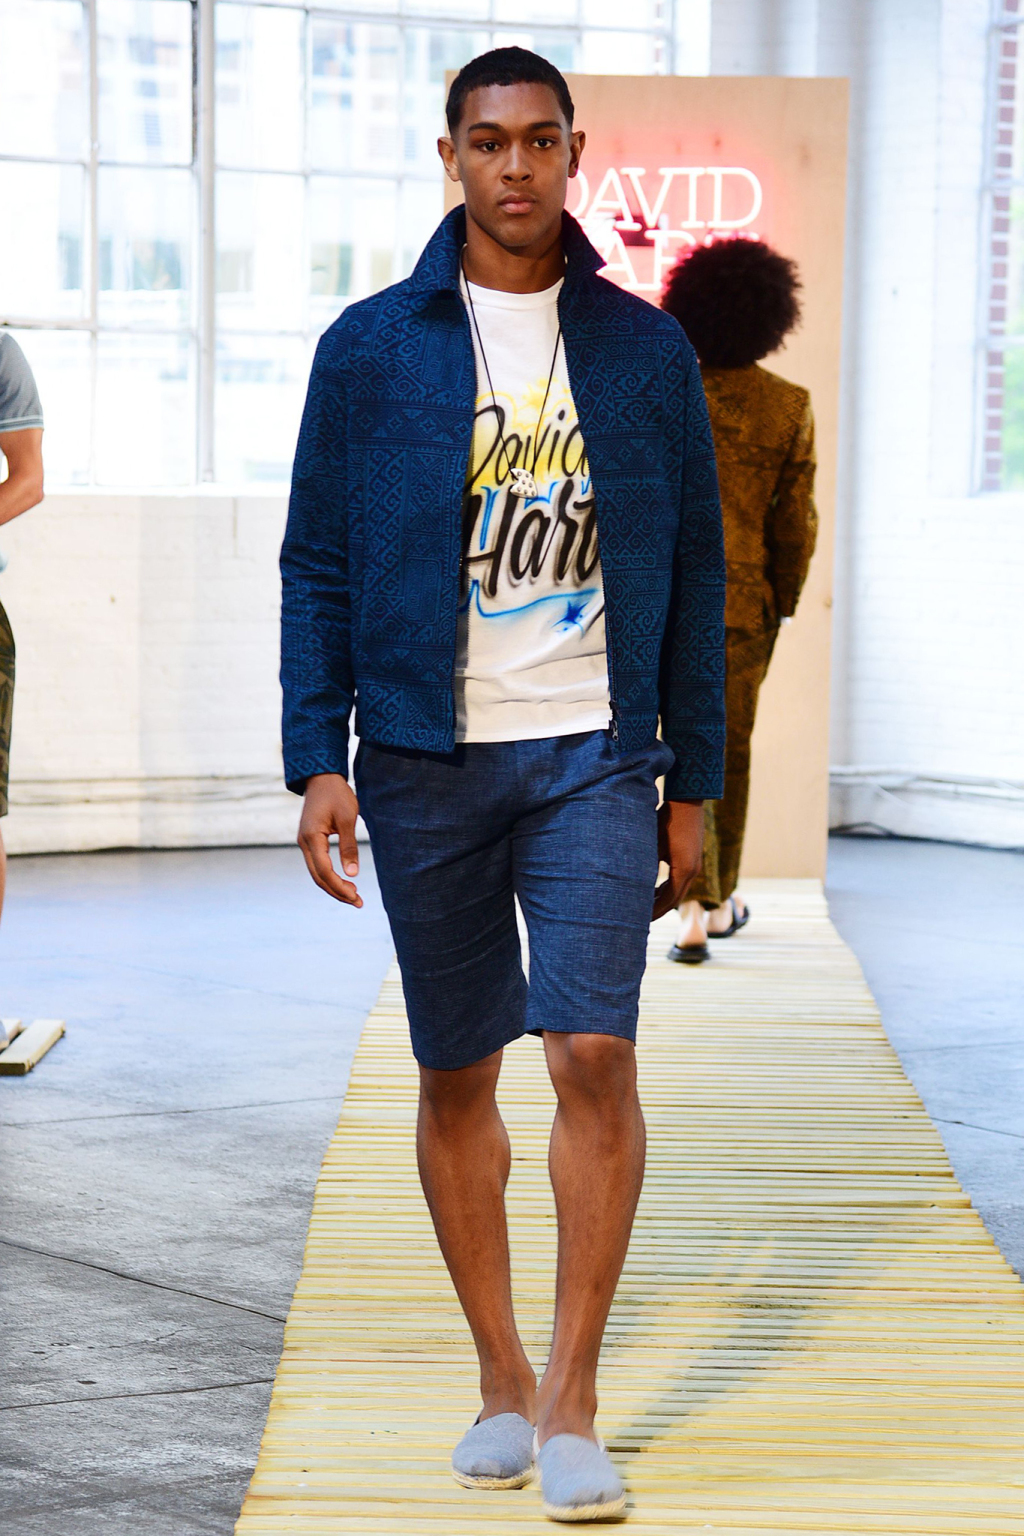 Mandatory Credit: Photo by Aurora Rose/WWD/REX/Shutterstock (5754822dr) Model on the catwalk David Hart presentation, Spring Summer 2017, New York Fashion Week: Men's, USA - 11 Jul 2016